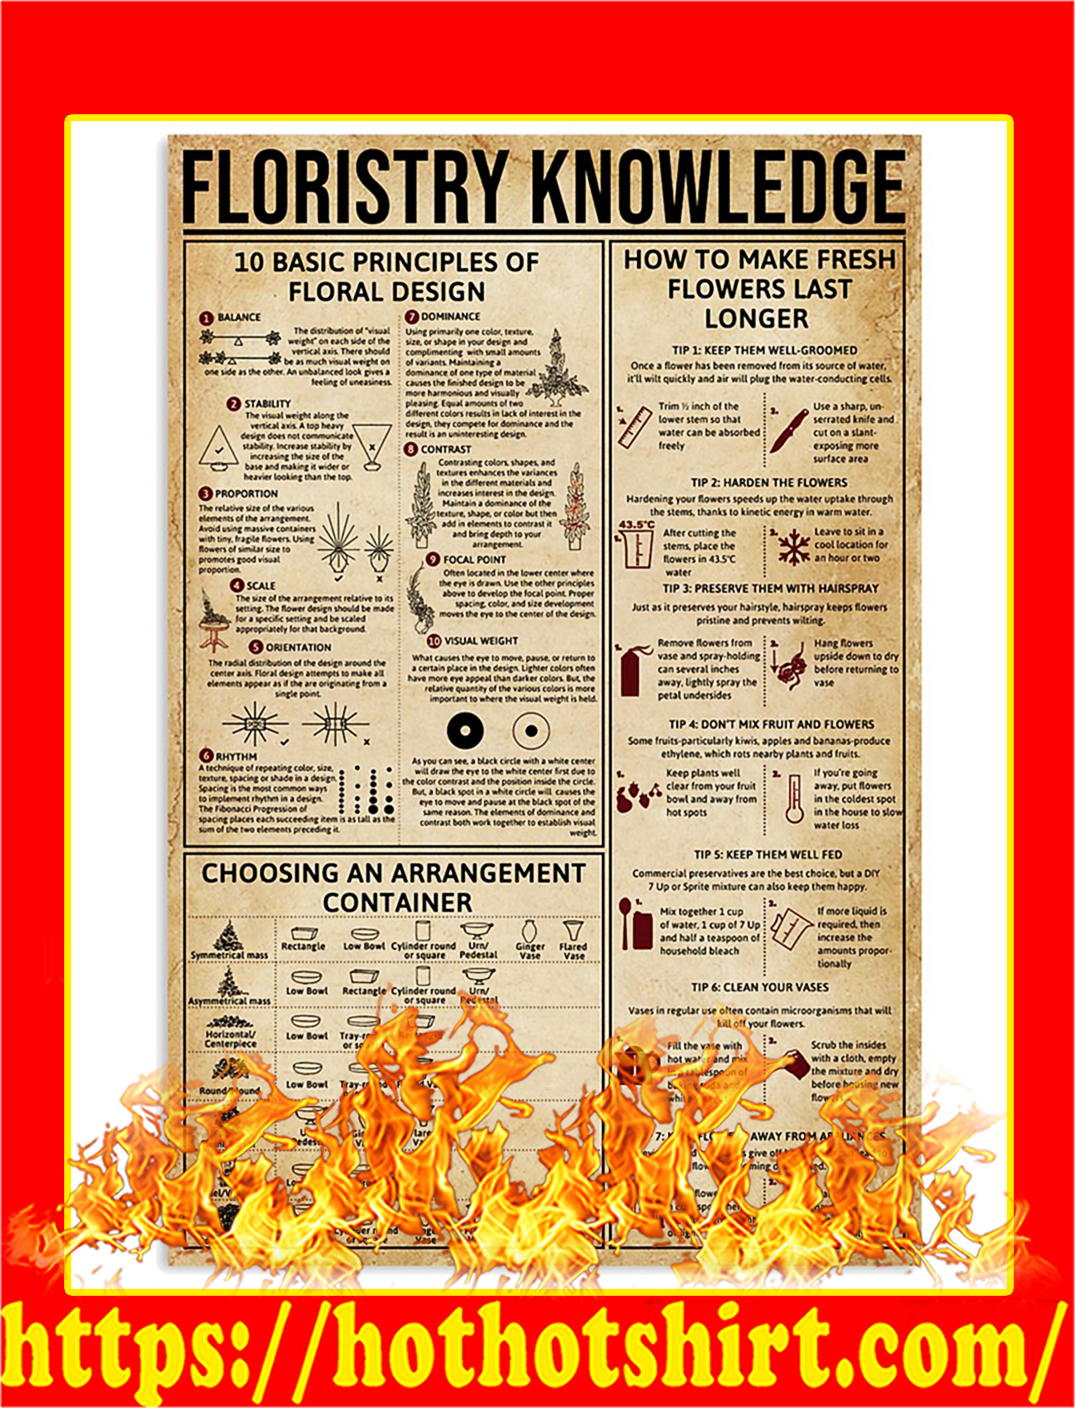 Floristry Knowledge Poster - A2Floristry Knowledge Poster - A2